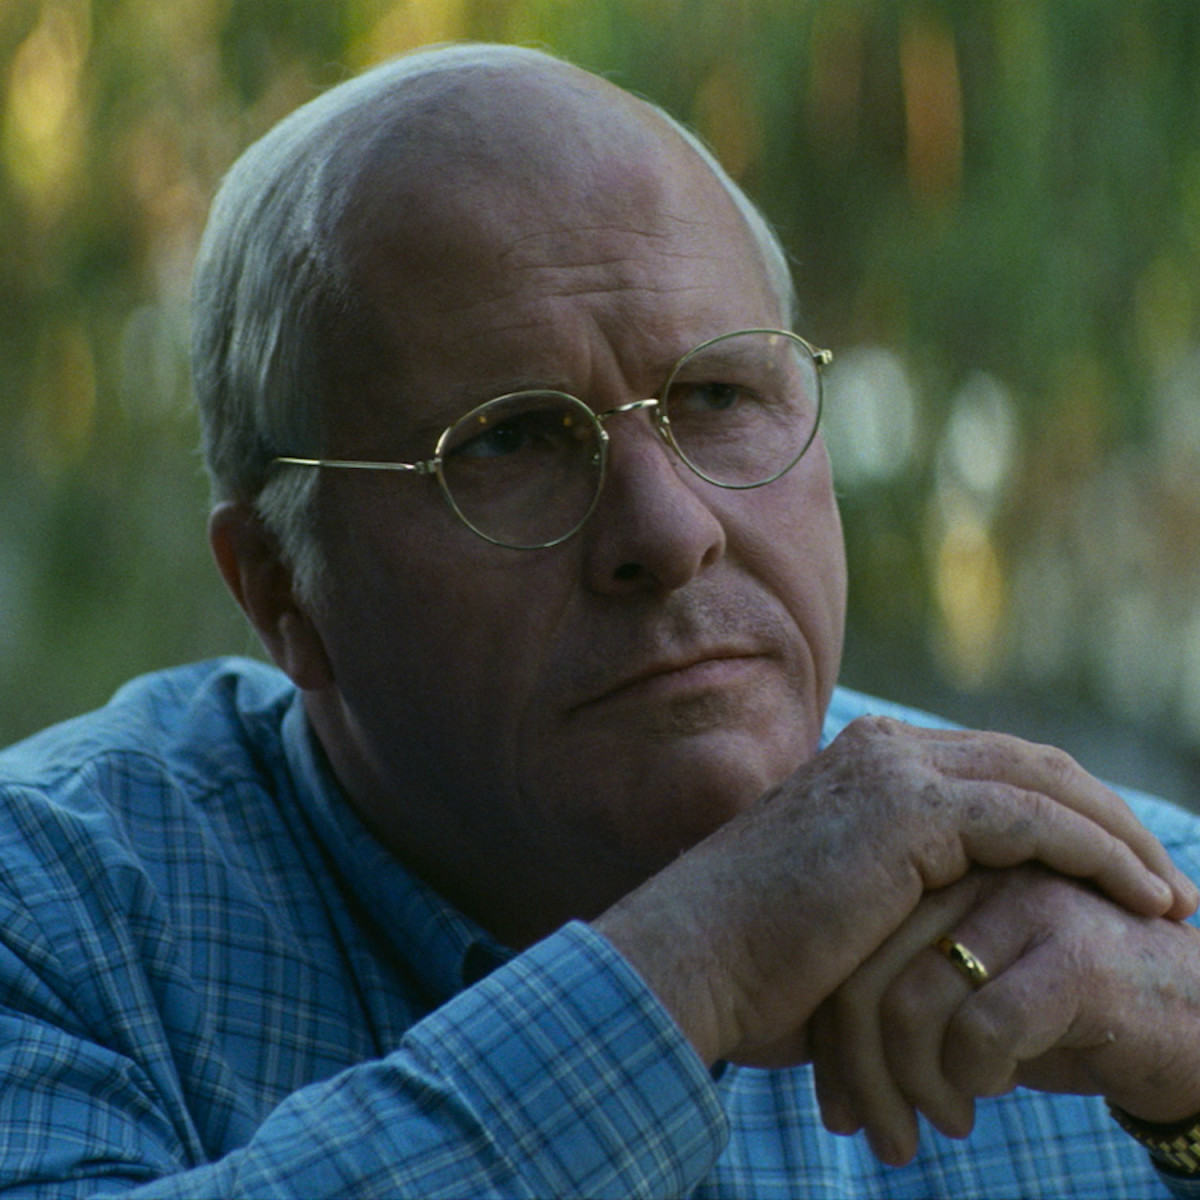 Christian Bale in Vice